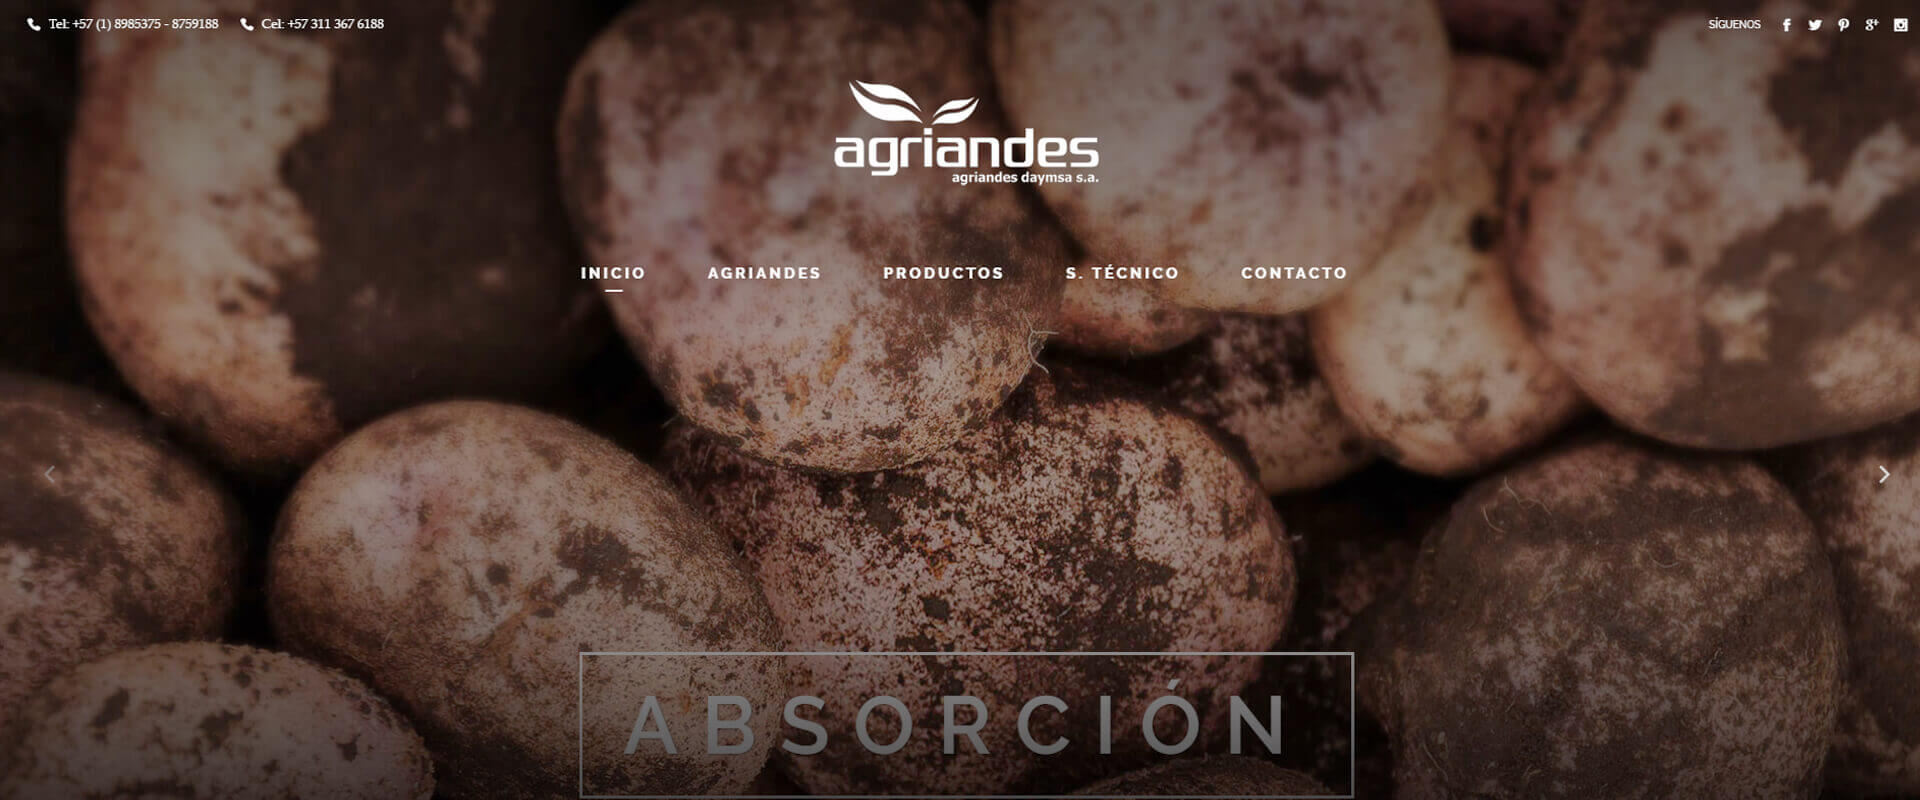 agriandes